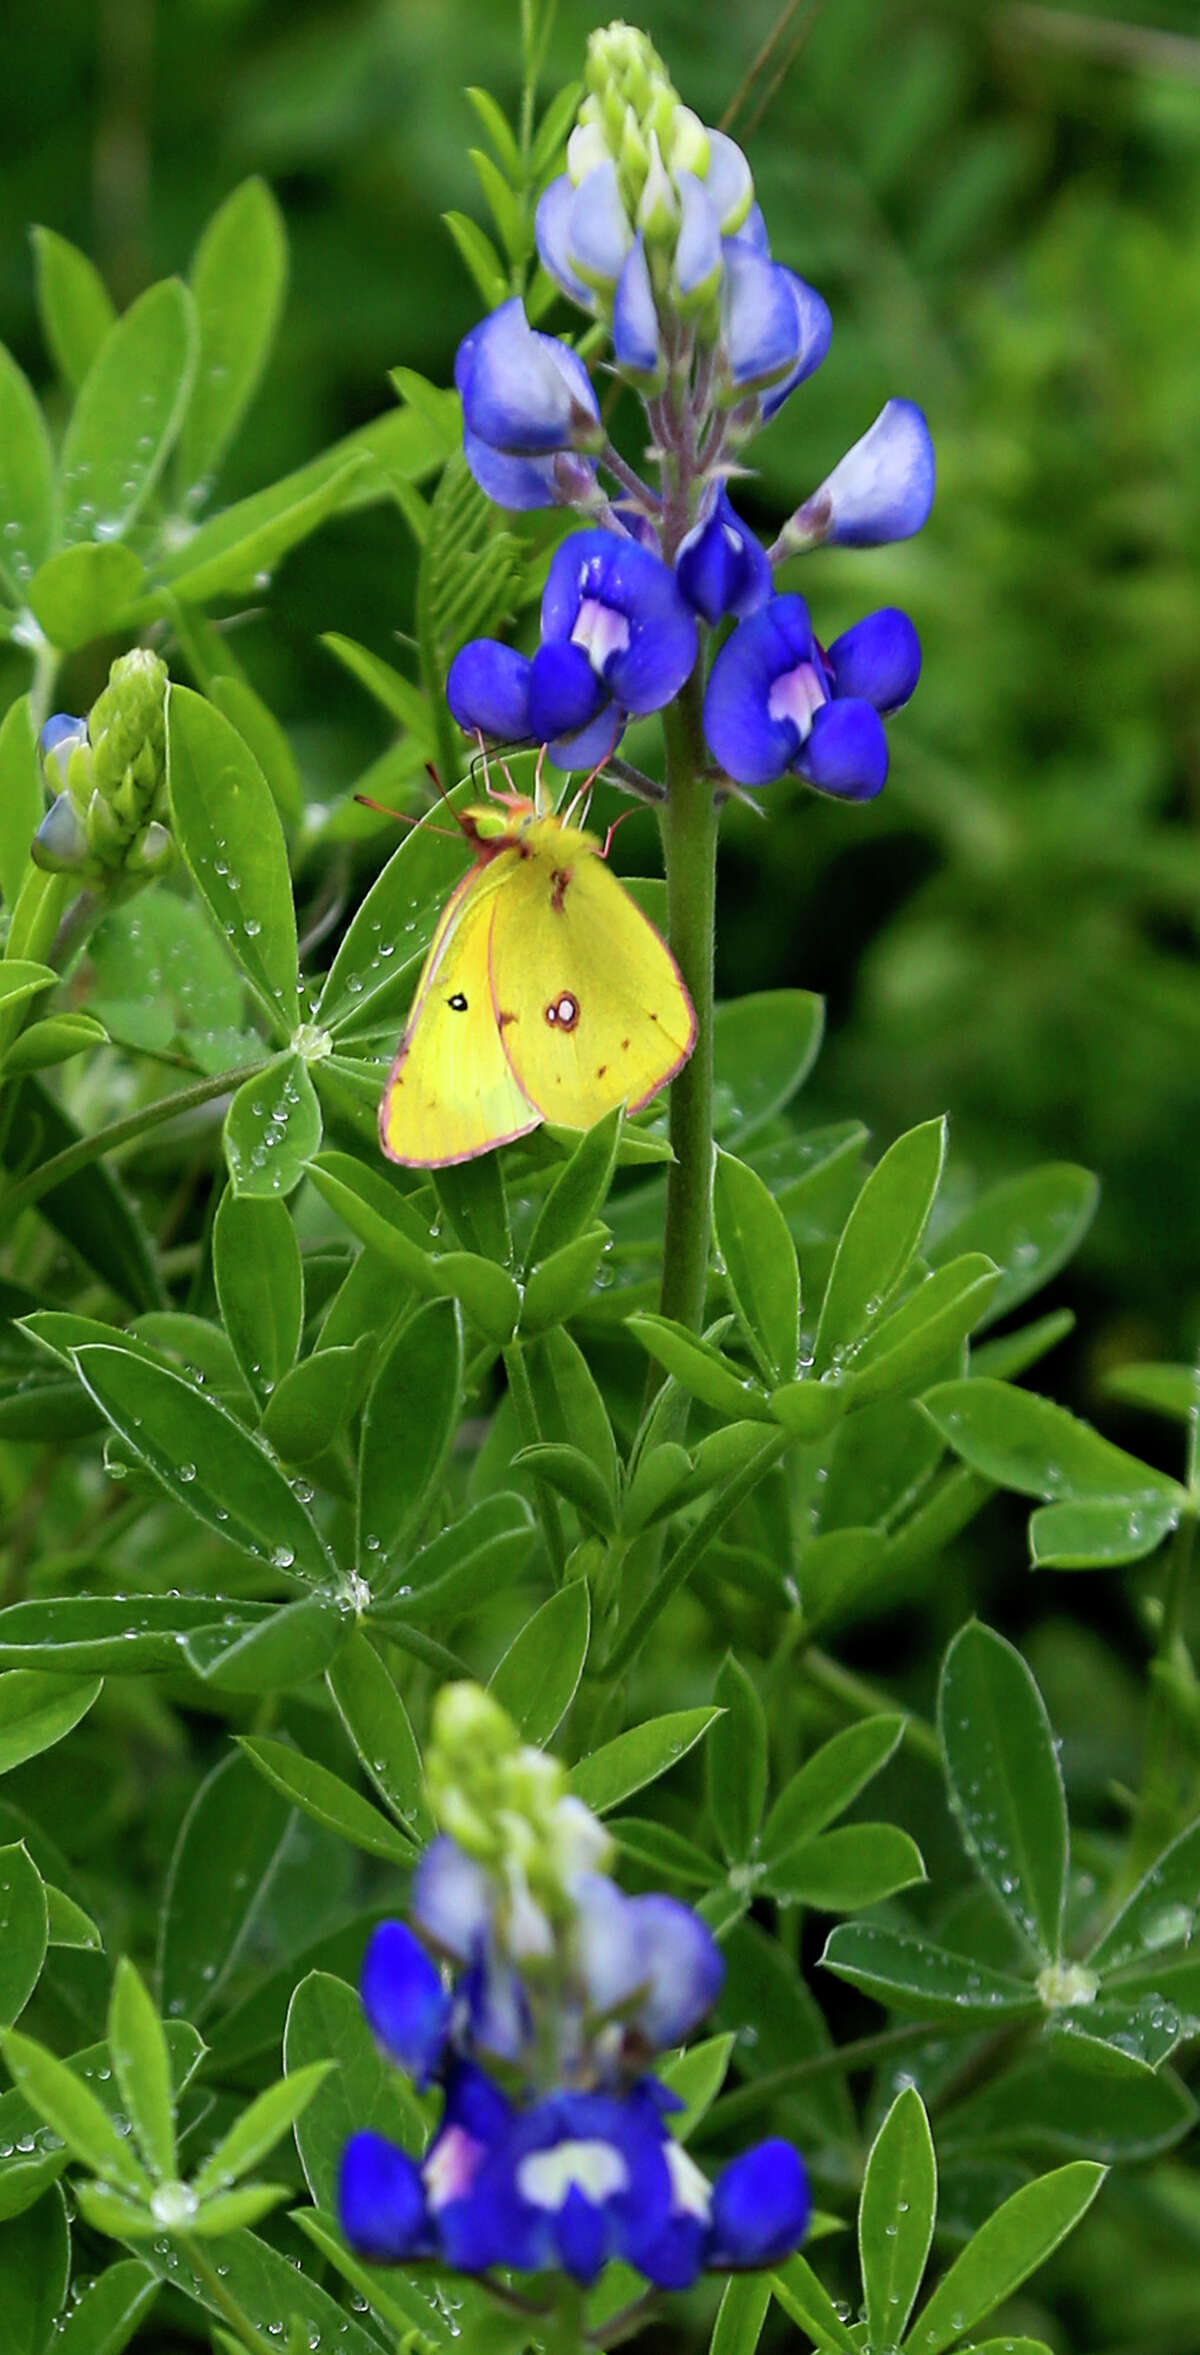 A butterfly clings Tuesday March 17, 2015 to a bluebonnet blossom on the 13,000 block of Jones Maltsberger. The first day of spring this year is Friday March 20.